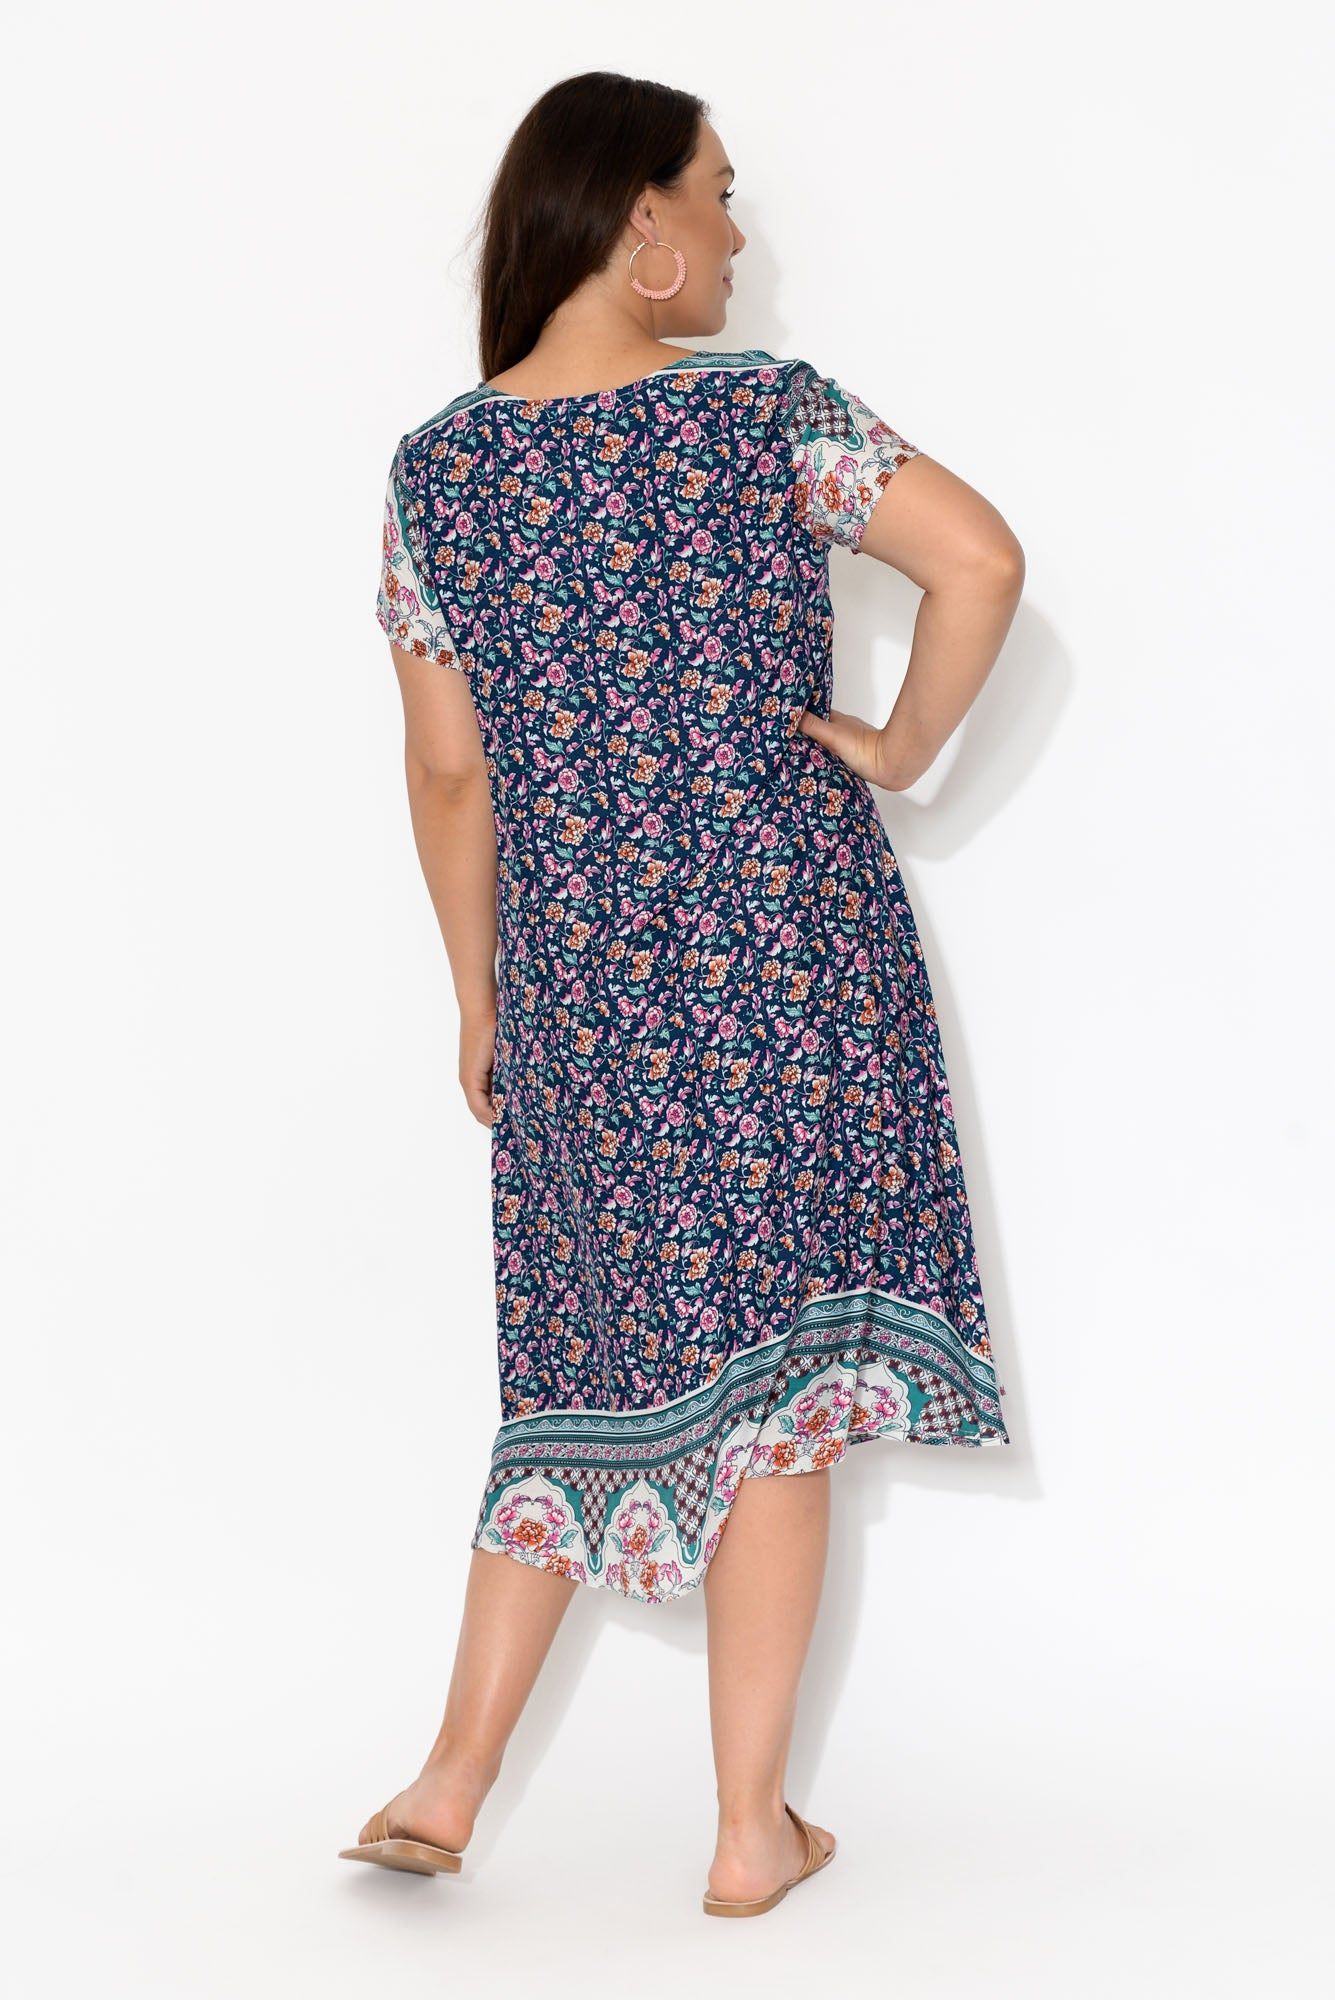 June Purple Floral Swing Dress